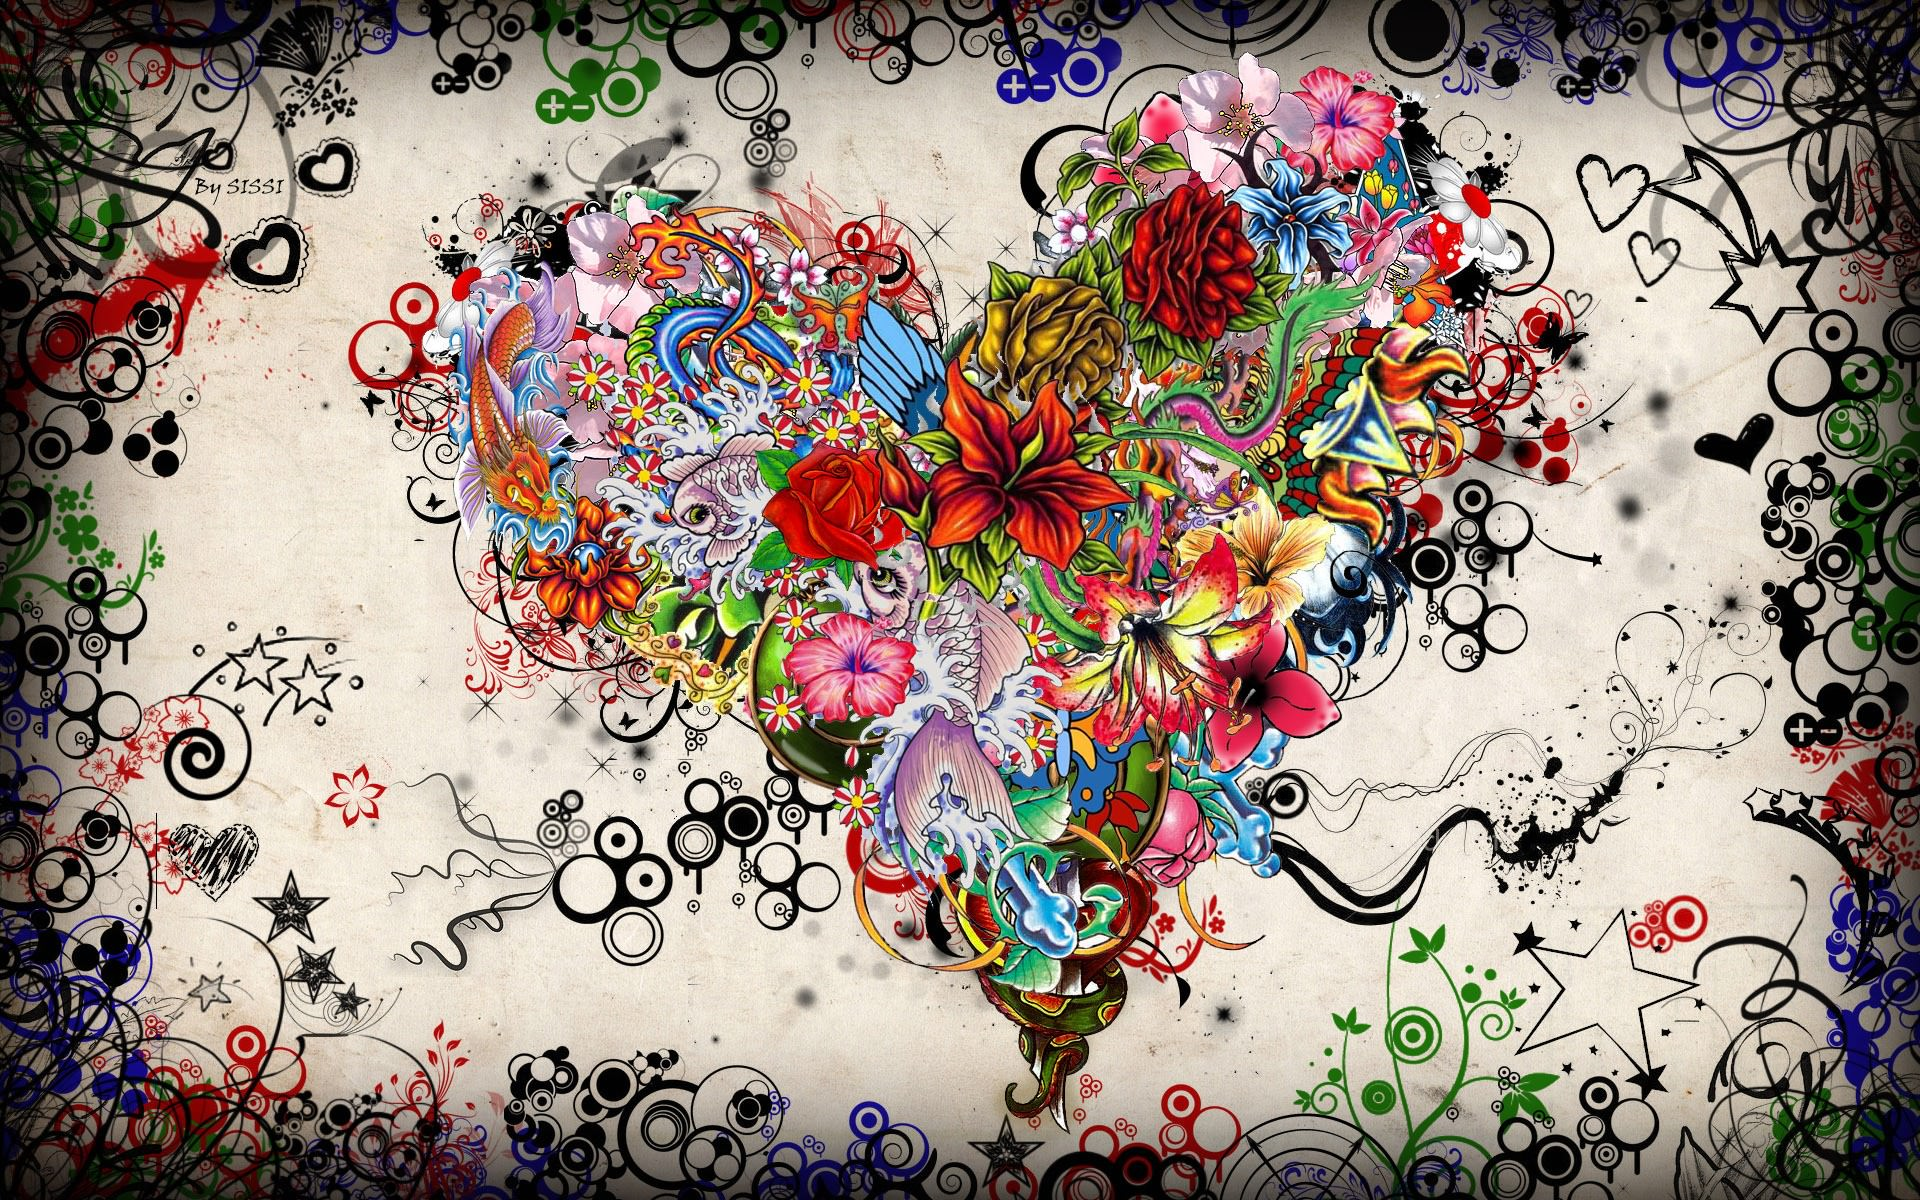 Artistic Heart Psychedelic Wallpaper